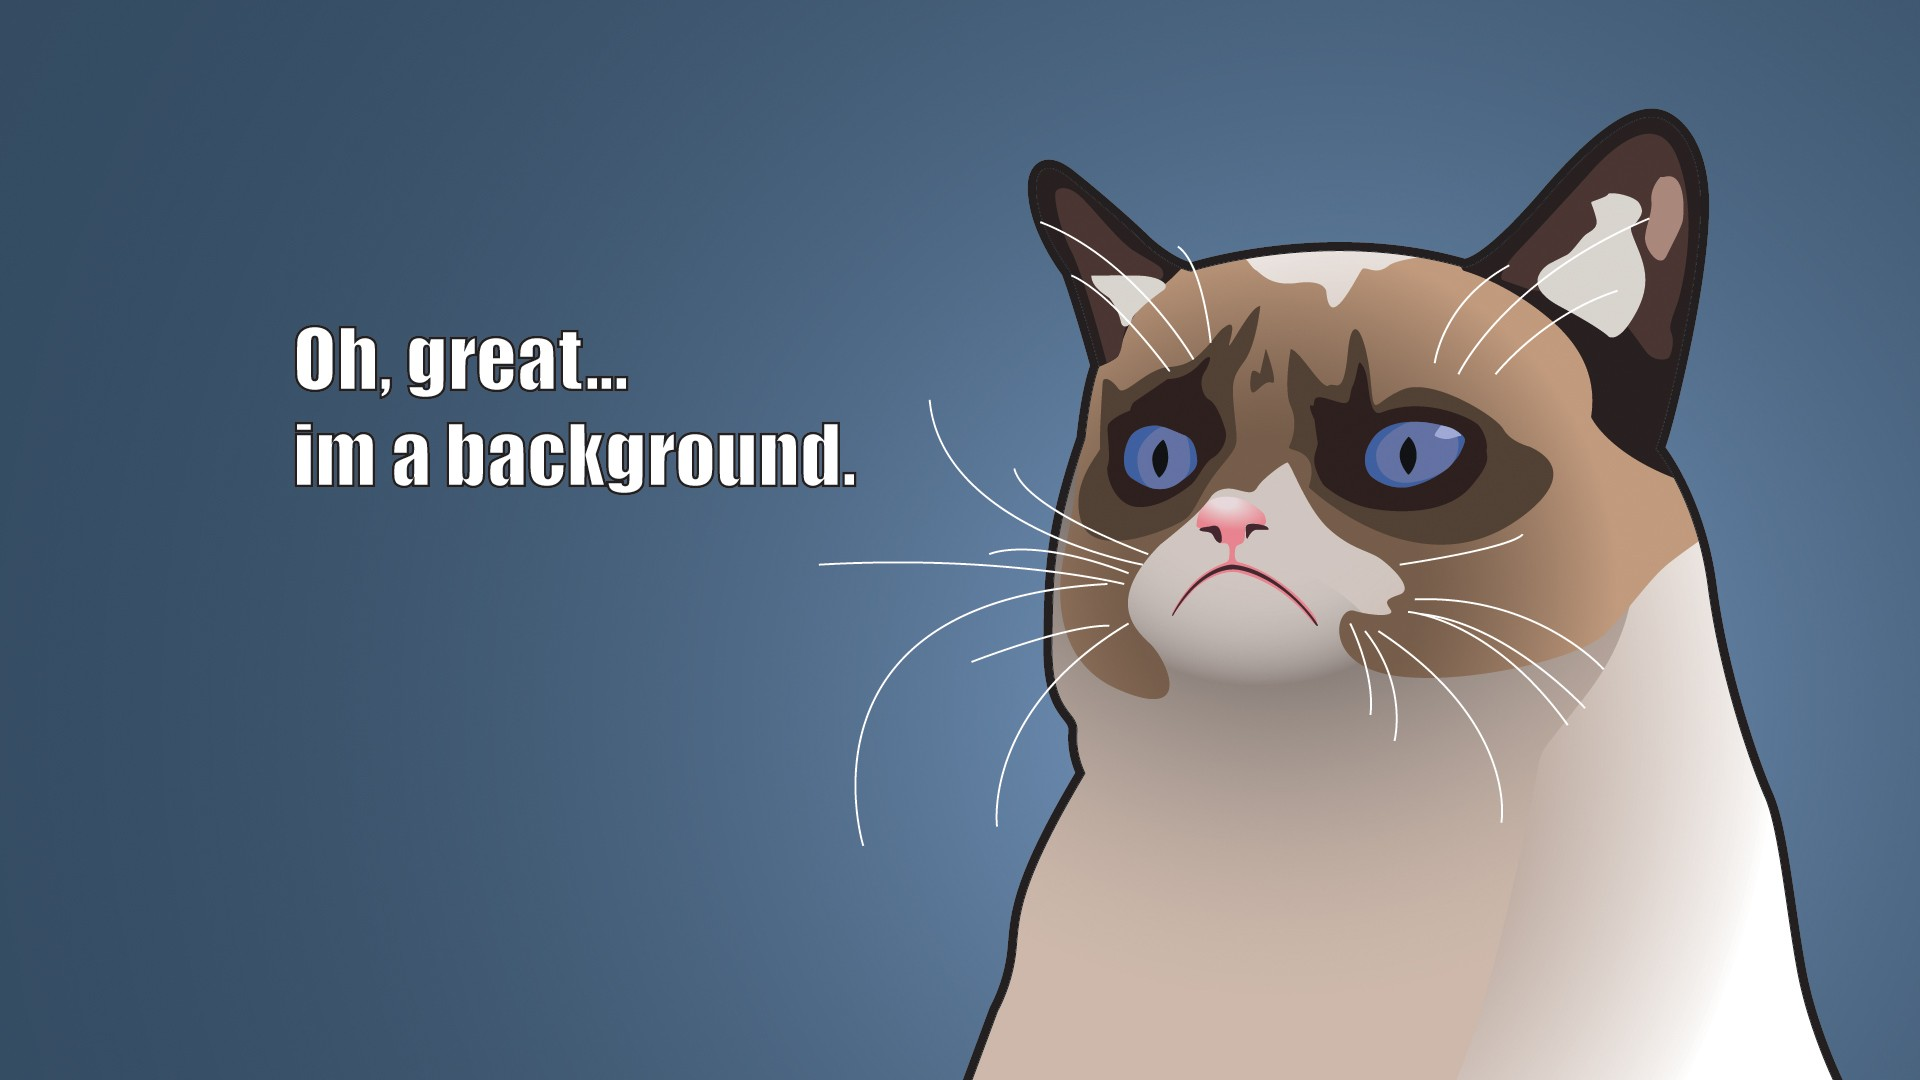 1920x1080 hilarious wallpapers for desktop grumpy cat cartoon 1920x1080